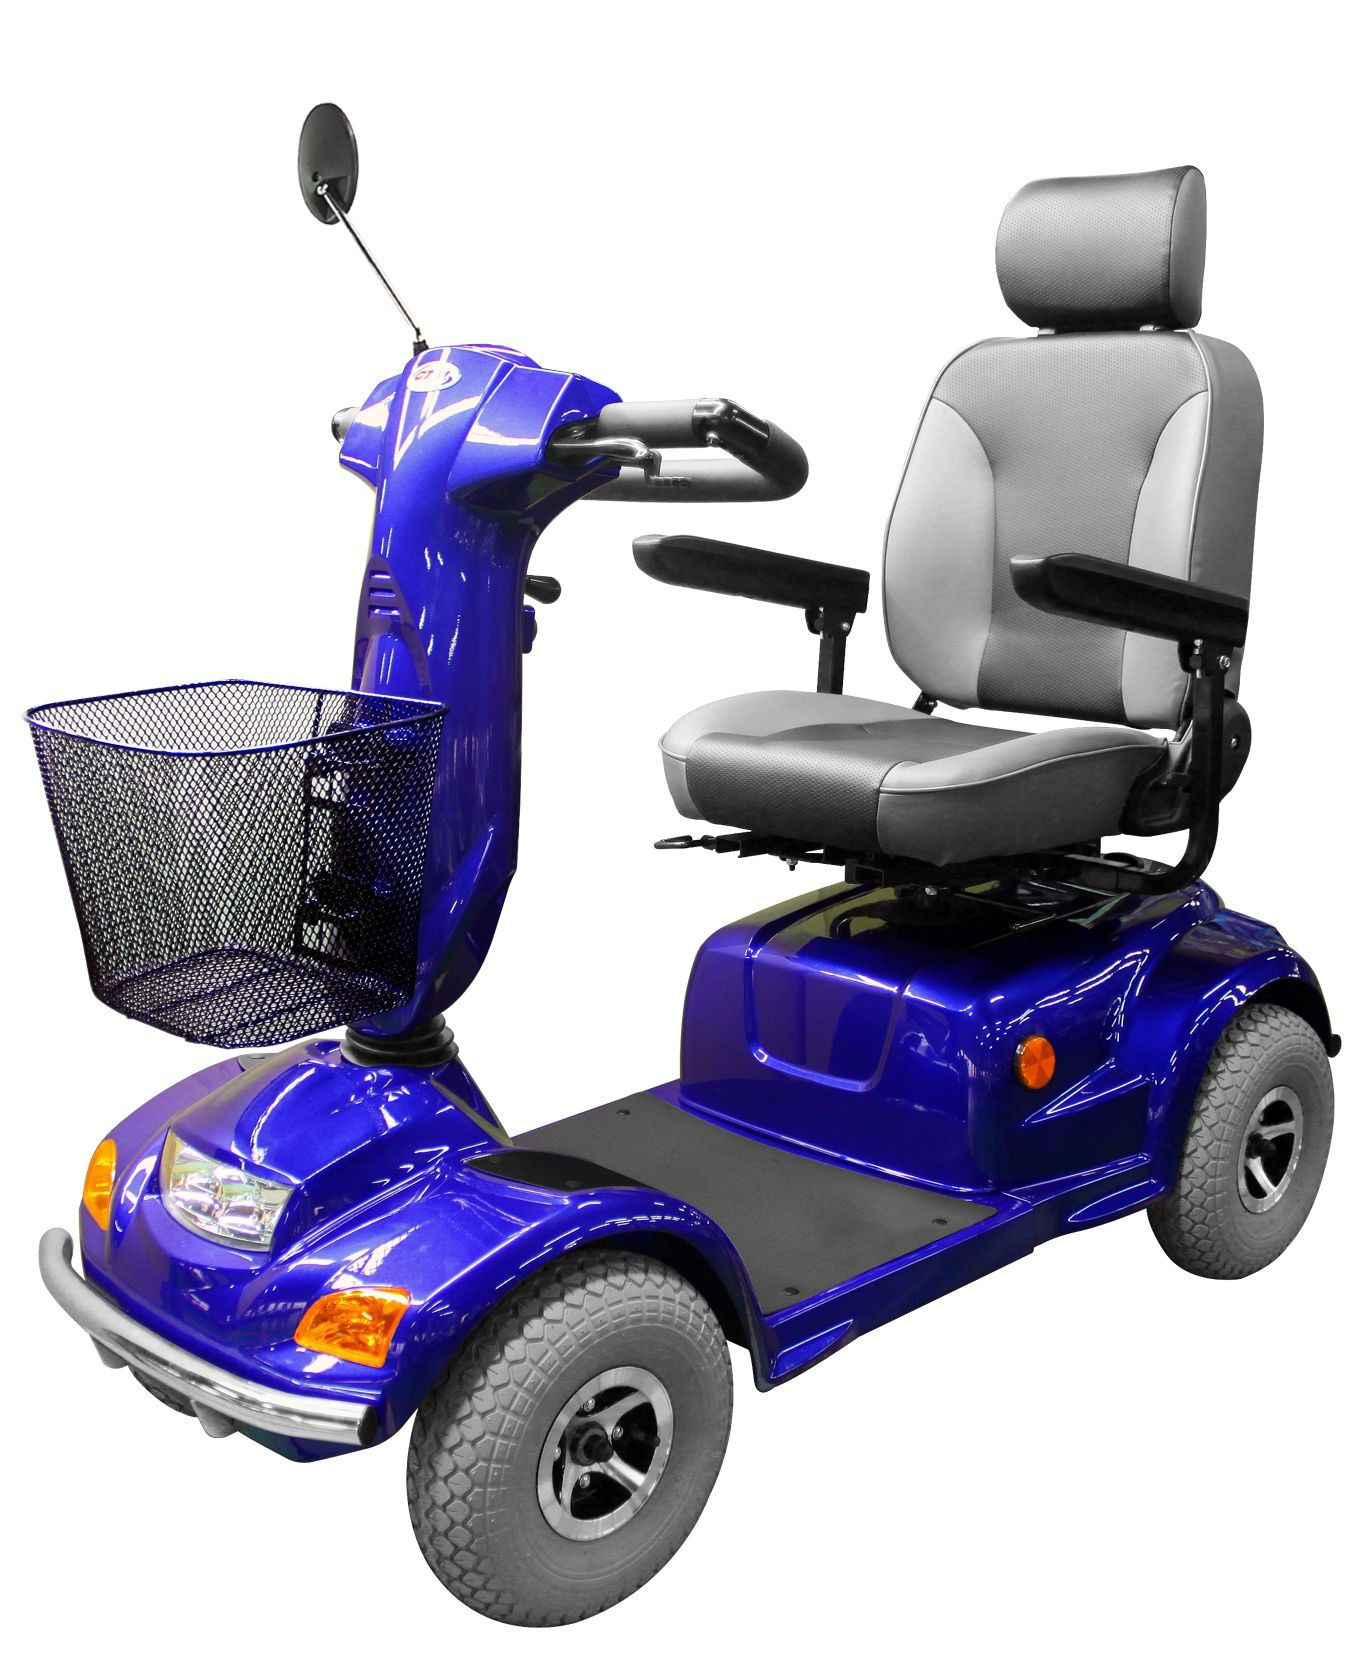 Ctm hs 890 mobility scooter for sale lowest prices tax for Motorized wheelchair for sale